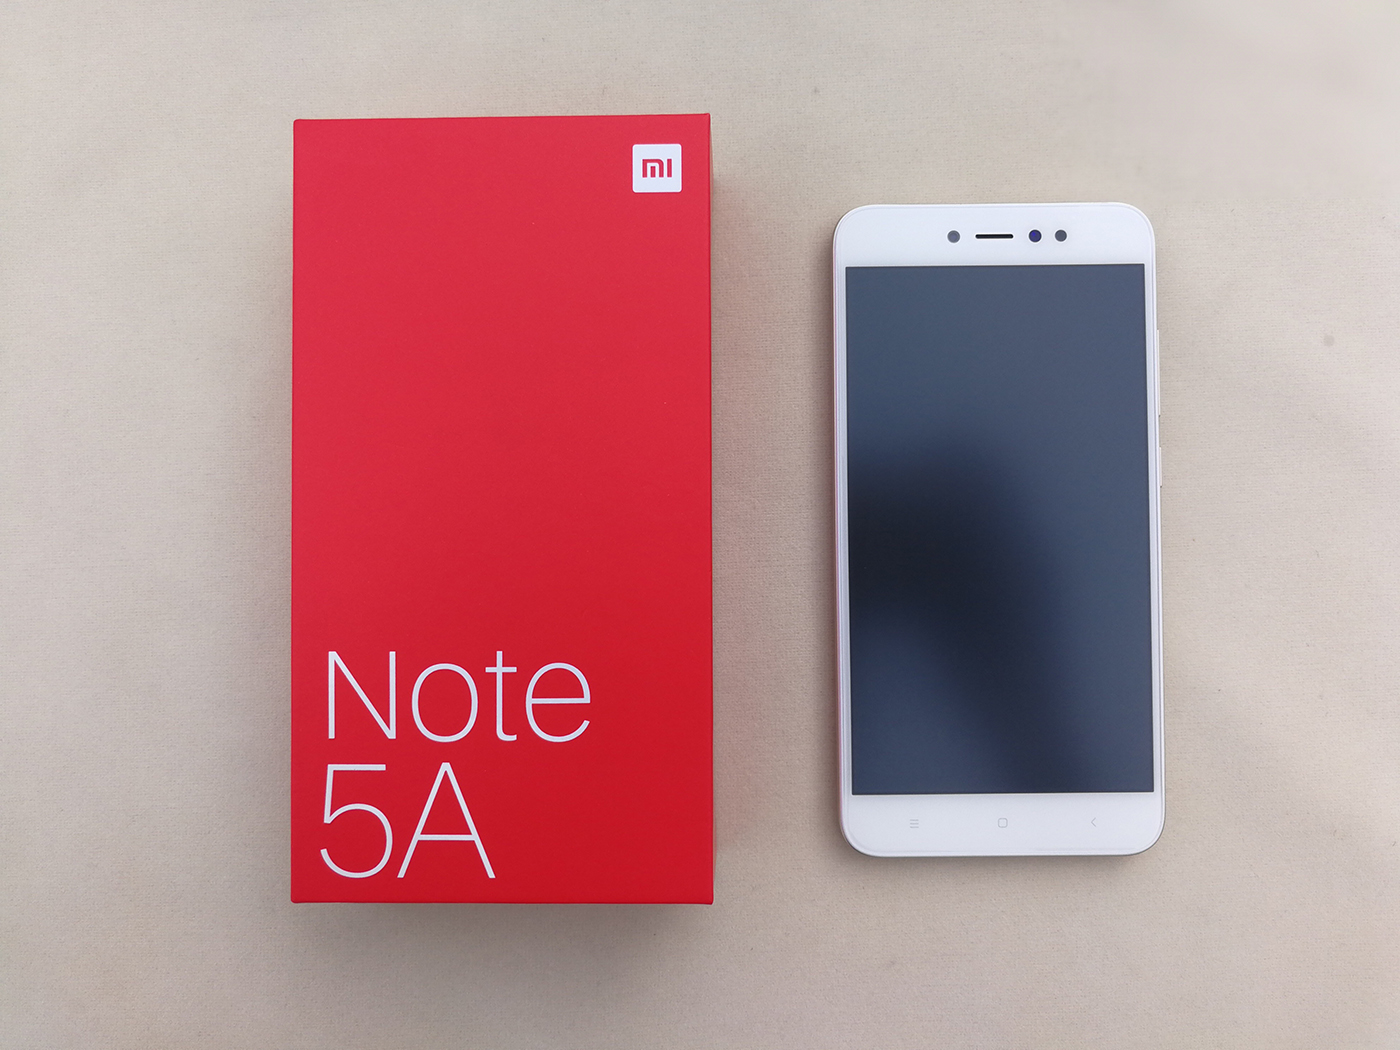 blog xiaomi redmi note 5a real life images unboxing pictures realeased from. Black Bedroom Furniture Sets. Home Design Ideas